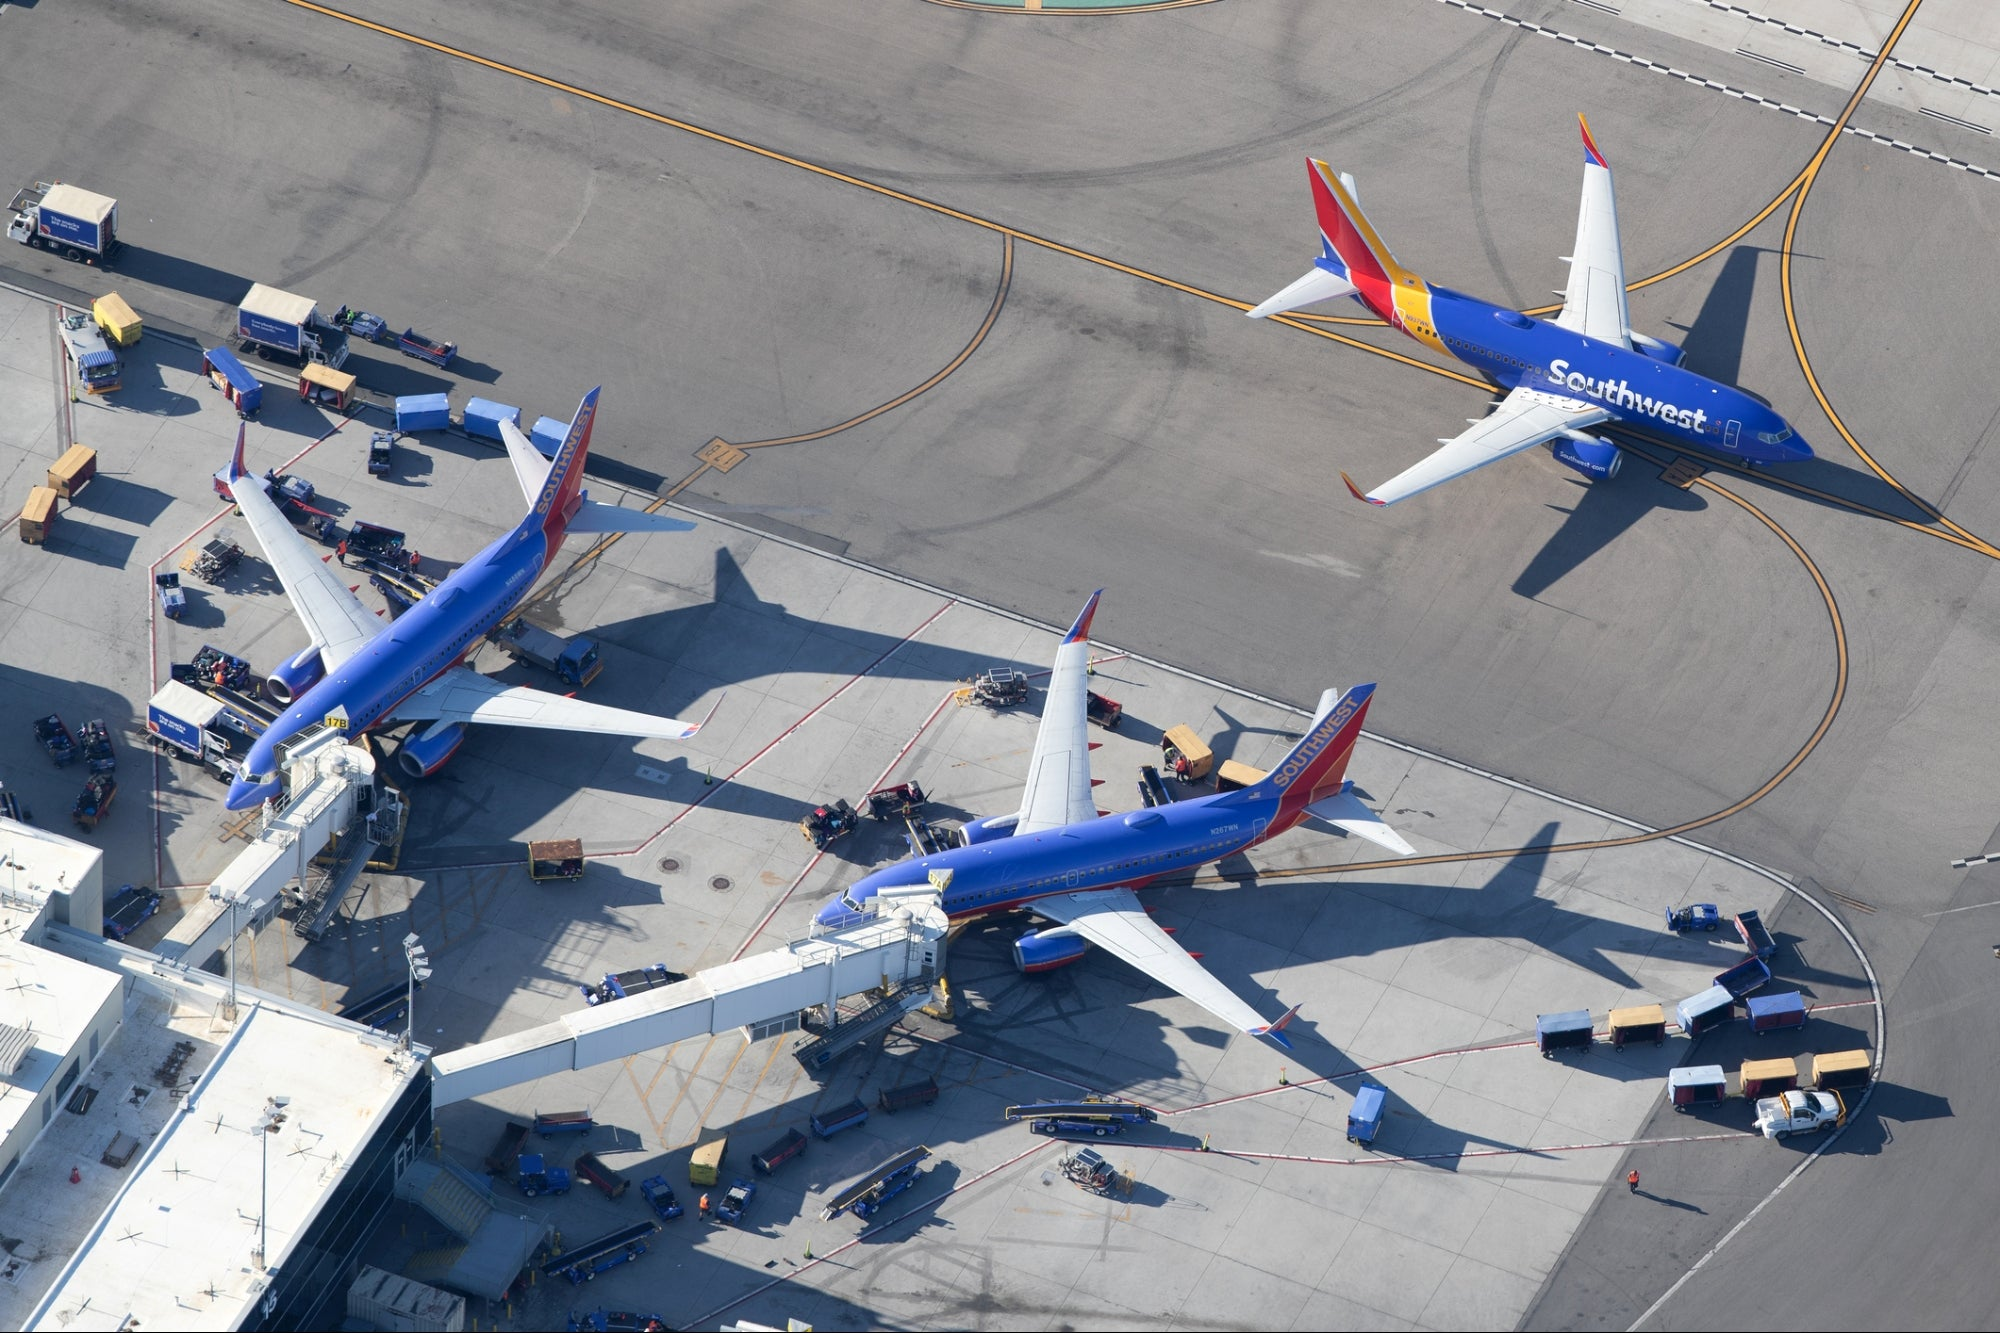 Passengers Furious After Southwest Airlines Leaves Thousands Stranded: 'I Just Want to Go Home'